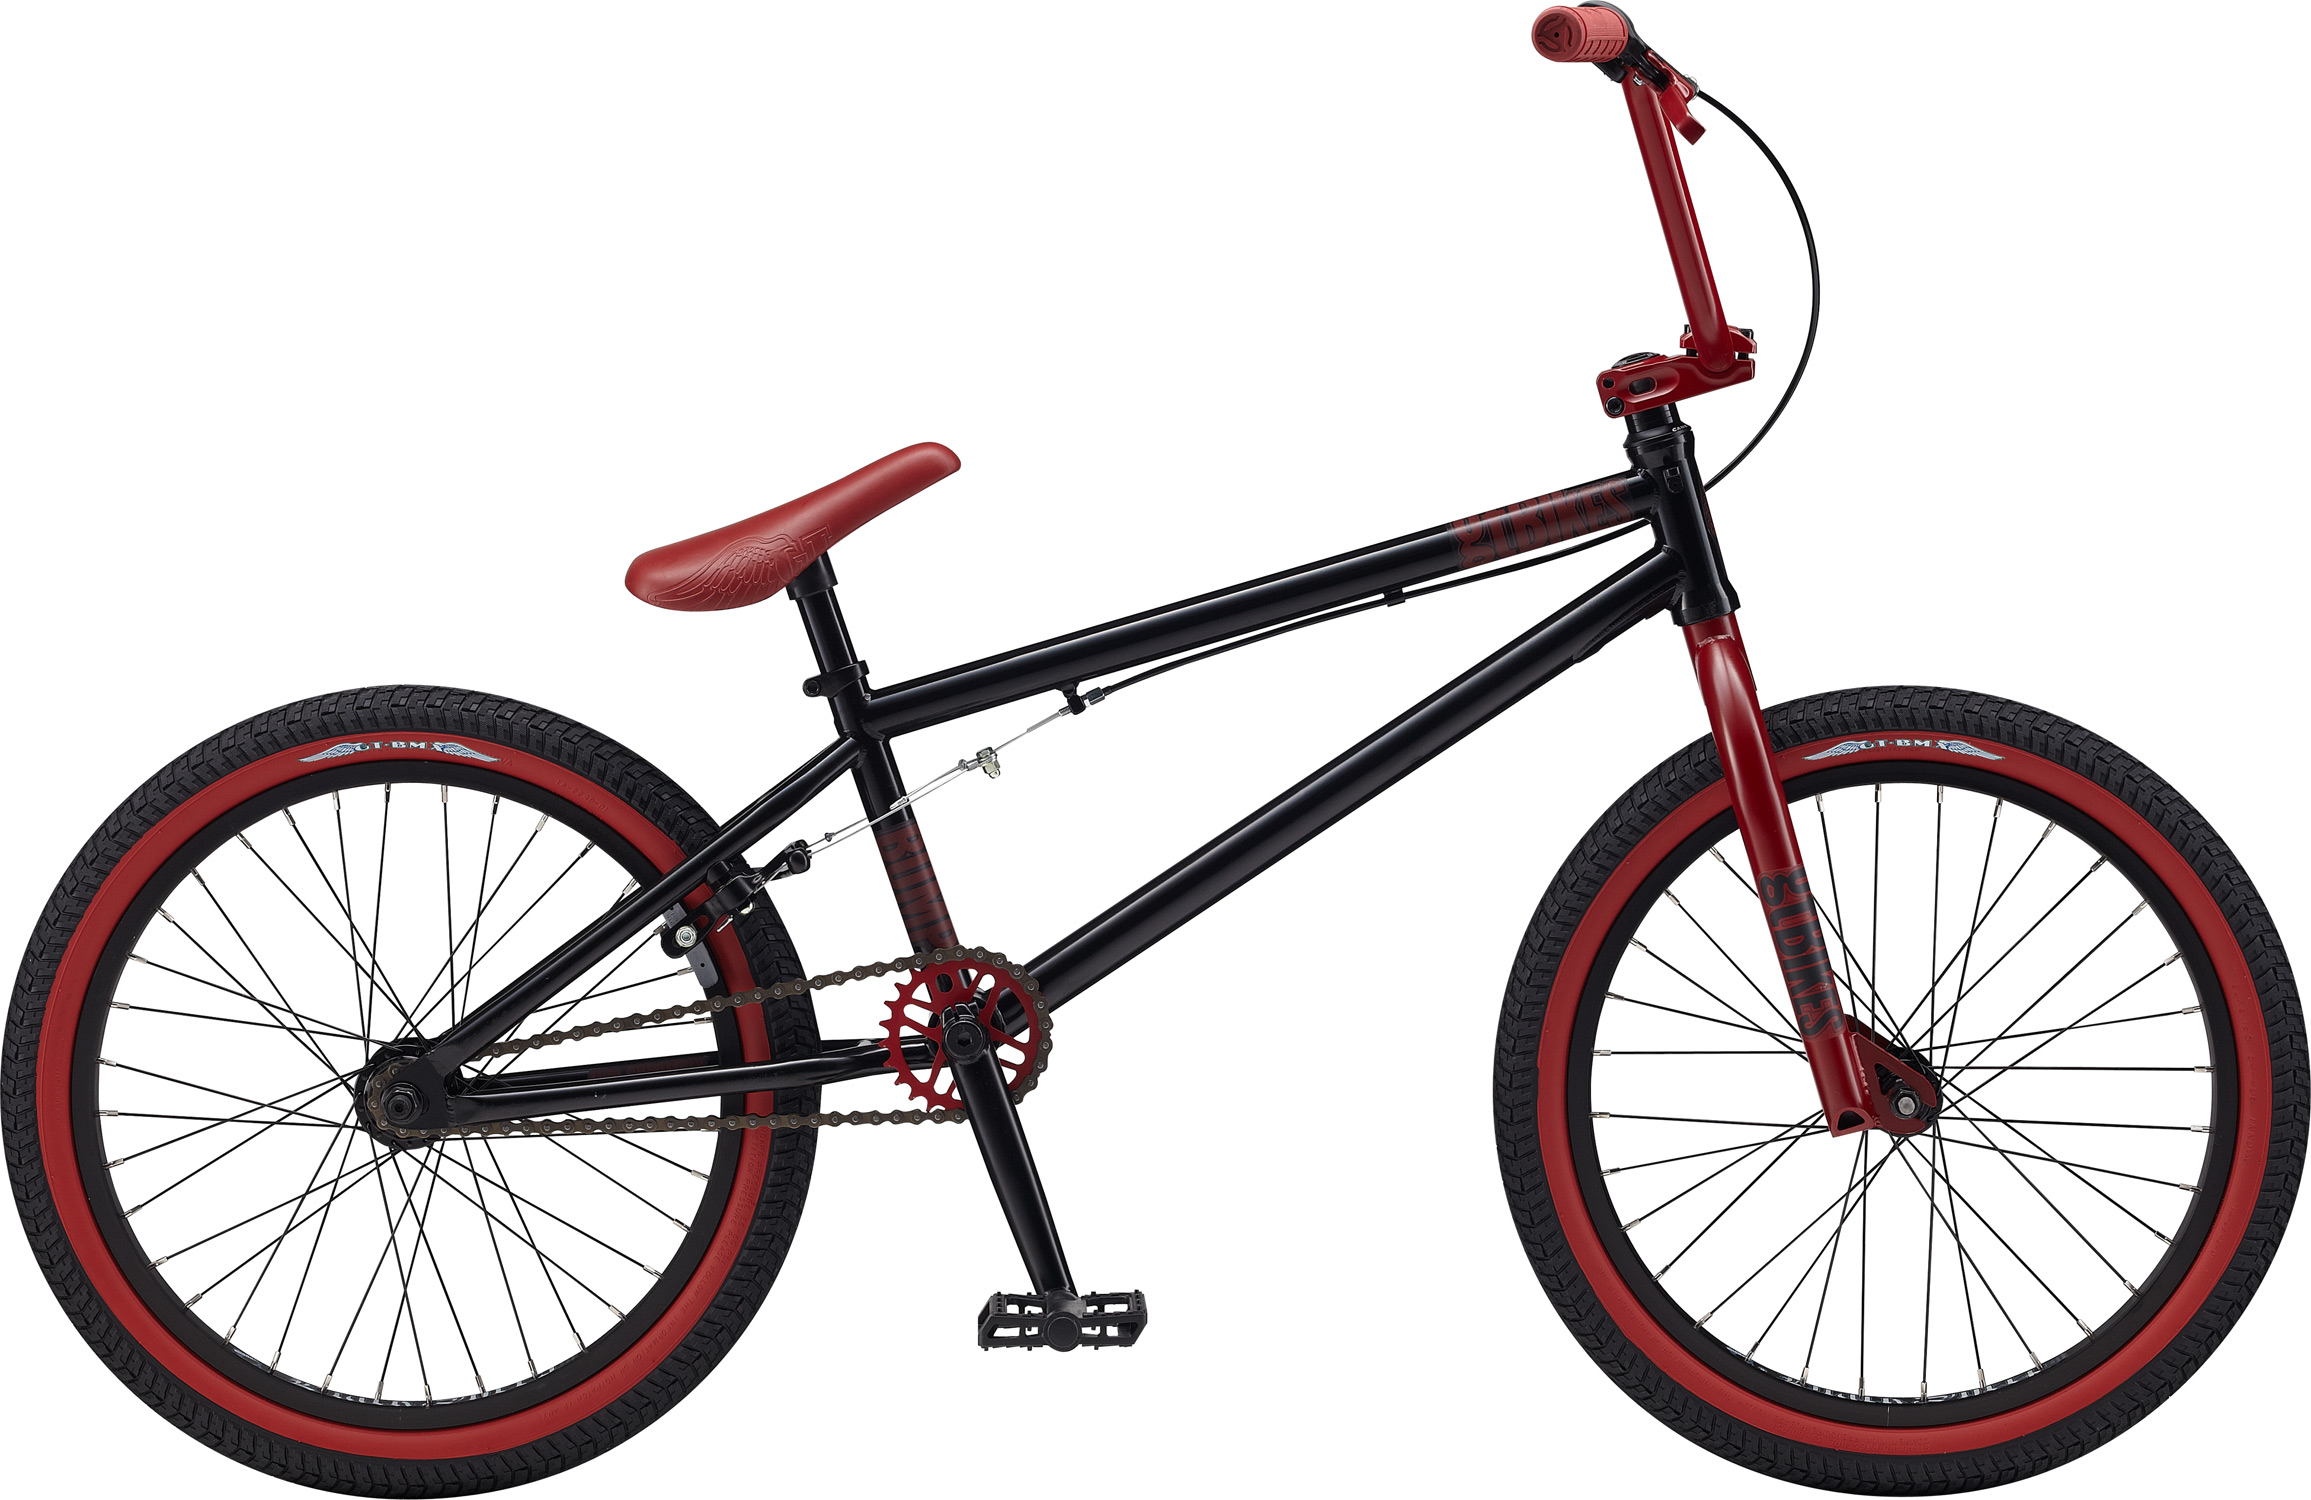 "BMX Key Features of the GT Bump BMX Bike 20"": Frame: NEW Straight Gauge, 3 Tubes Cro Mo , (Tt, St, DT), Dumped C/S, Triple Triangle™, 14mm Dropouts, S/S Mounted Brake Mounts, W/ Removable Rotor Tabs, Front Suspension: GT, Cro-Mo Steerer/ Hi-Ten, 31.8-28.6 Taper, 3/8, 1 1/8"" Crankset: GT Cro-Mo 3 Pcs, 8T, 175mm 25T Wheels/Hubs: GT AL Cassette Sealed 3/8F, 14mmr 32F, 36R Hole Brakes: Tektro FX340R - $299.99"